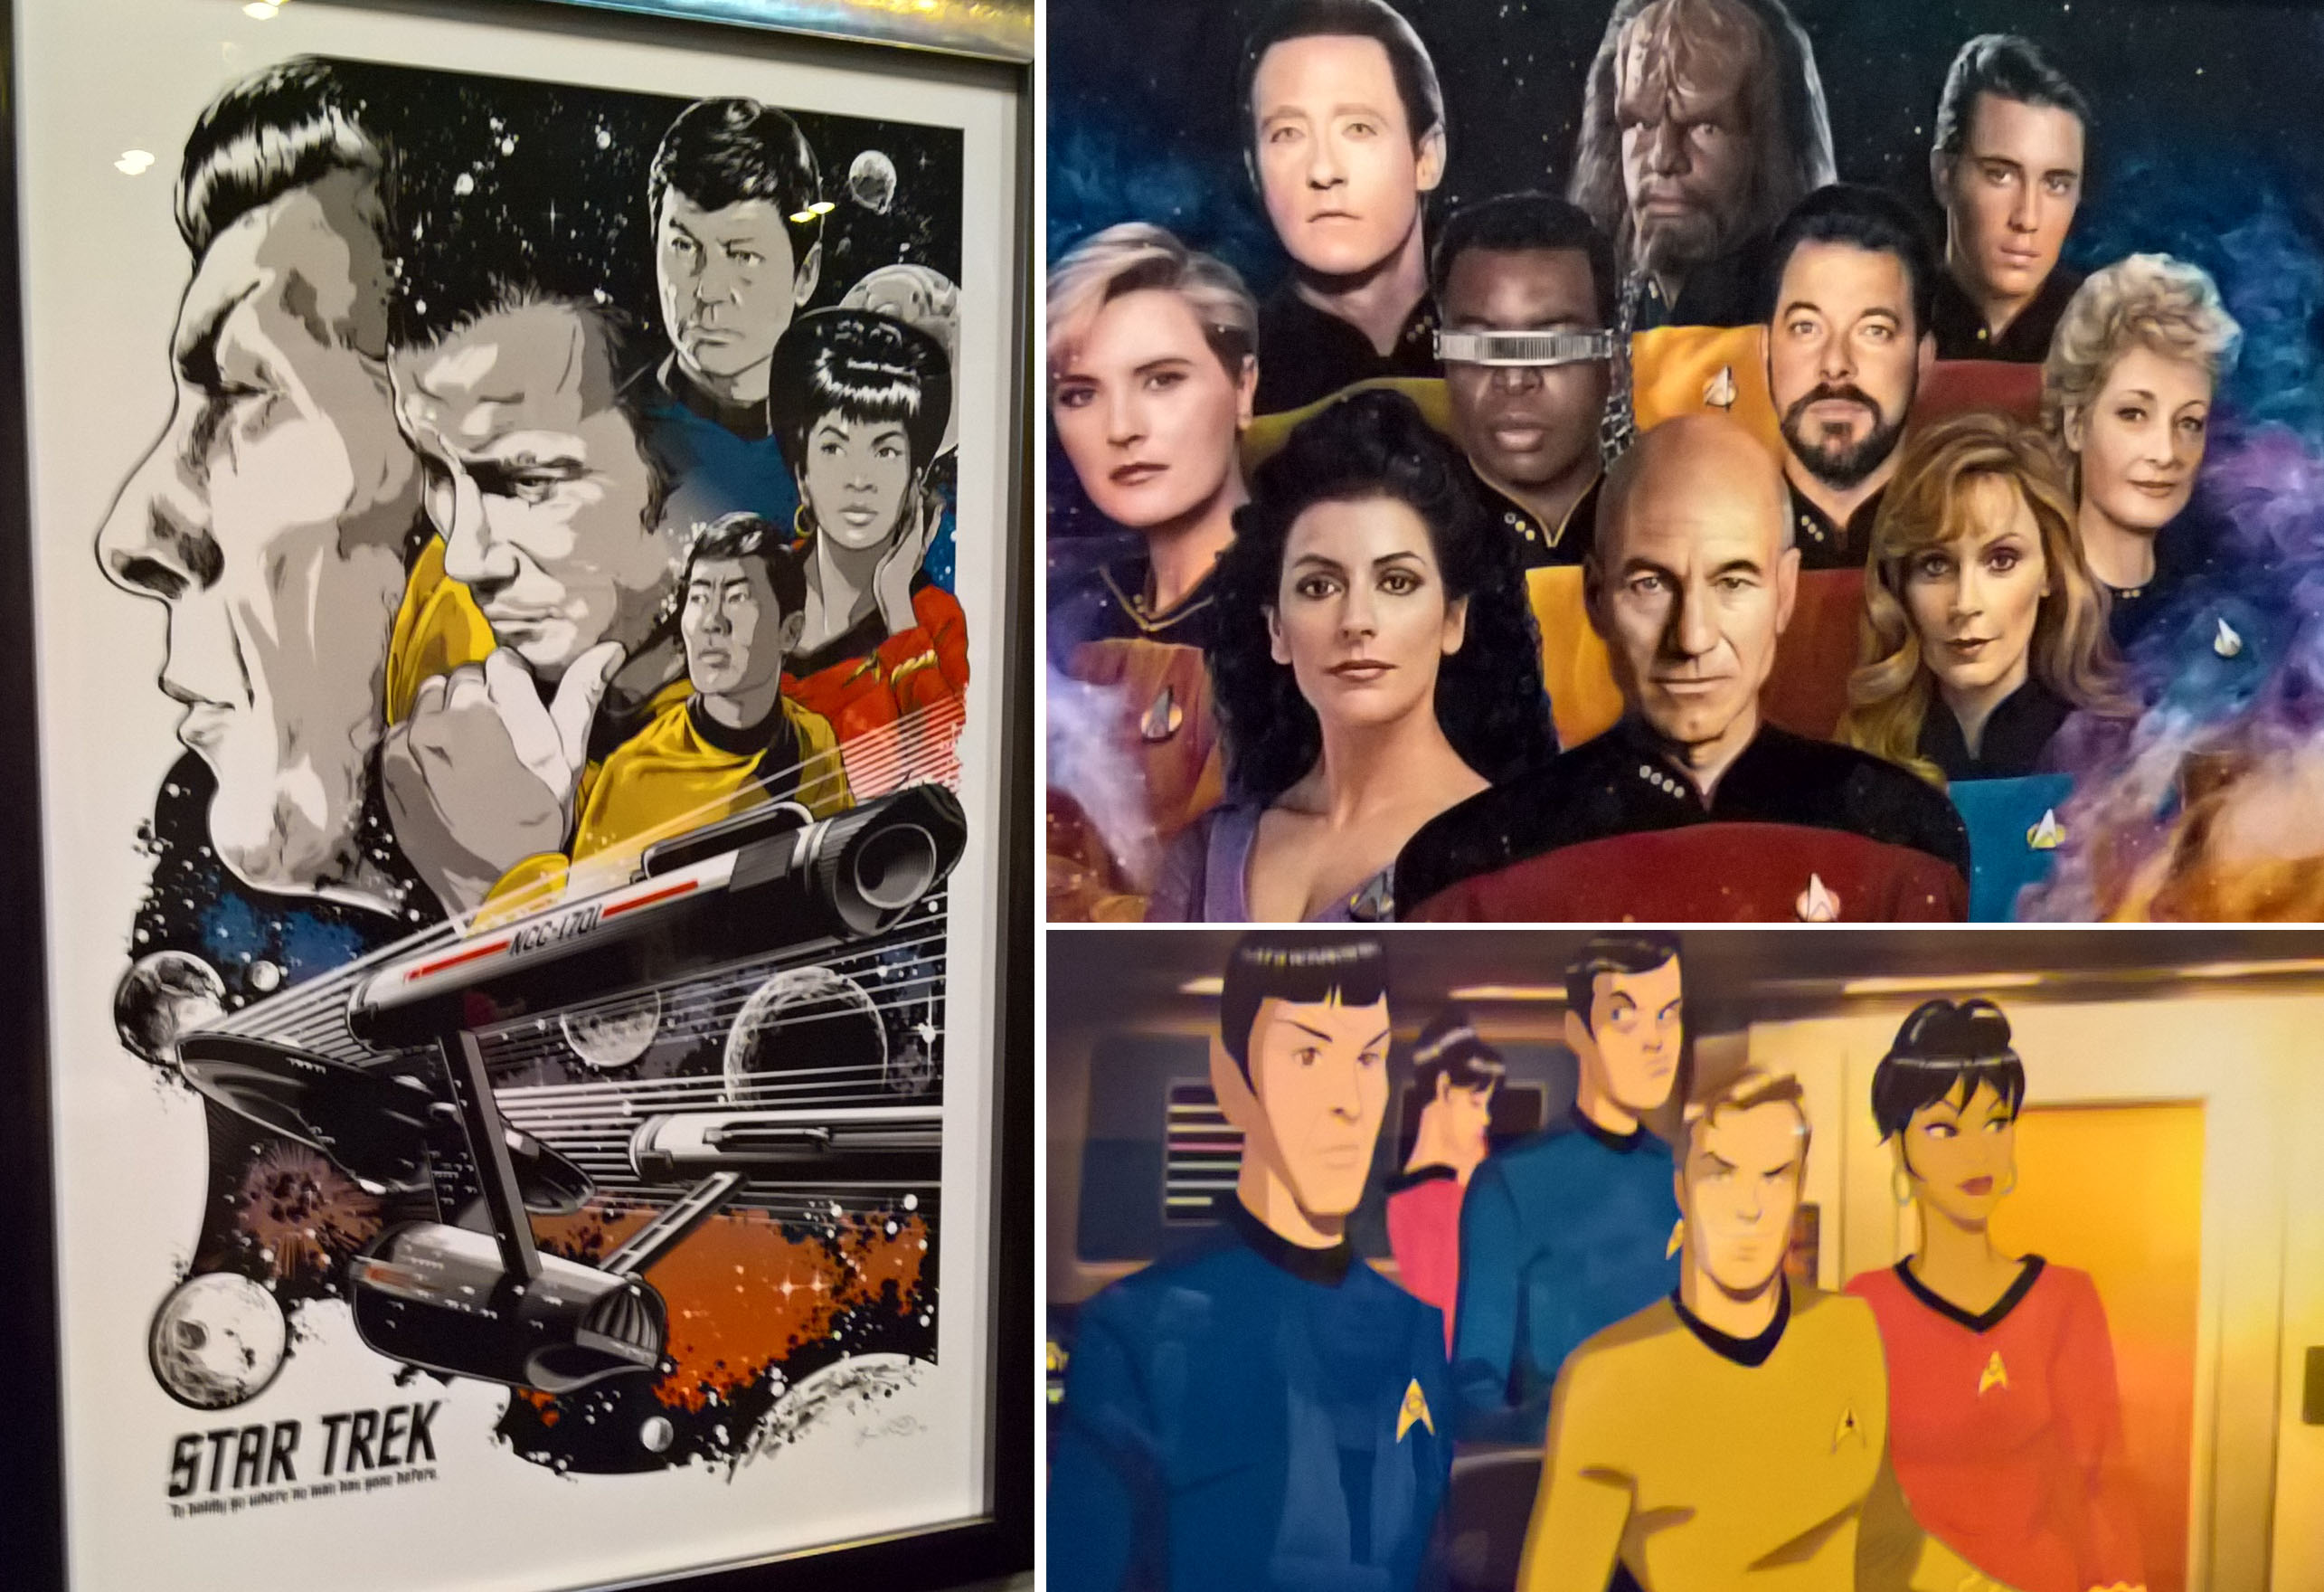 destination-star-trek-50th-anniversary-art-gallery-the-last-krystallos